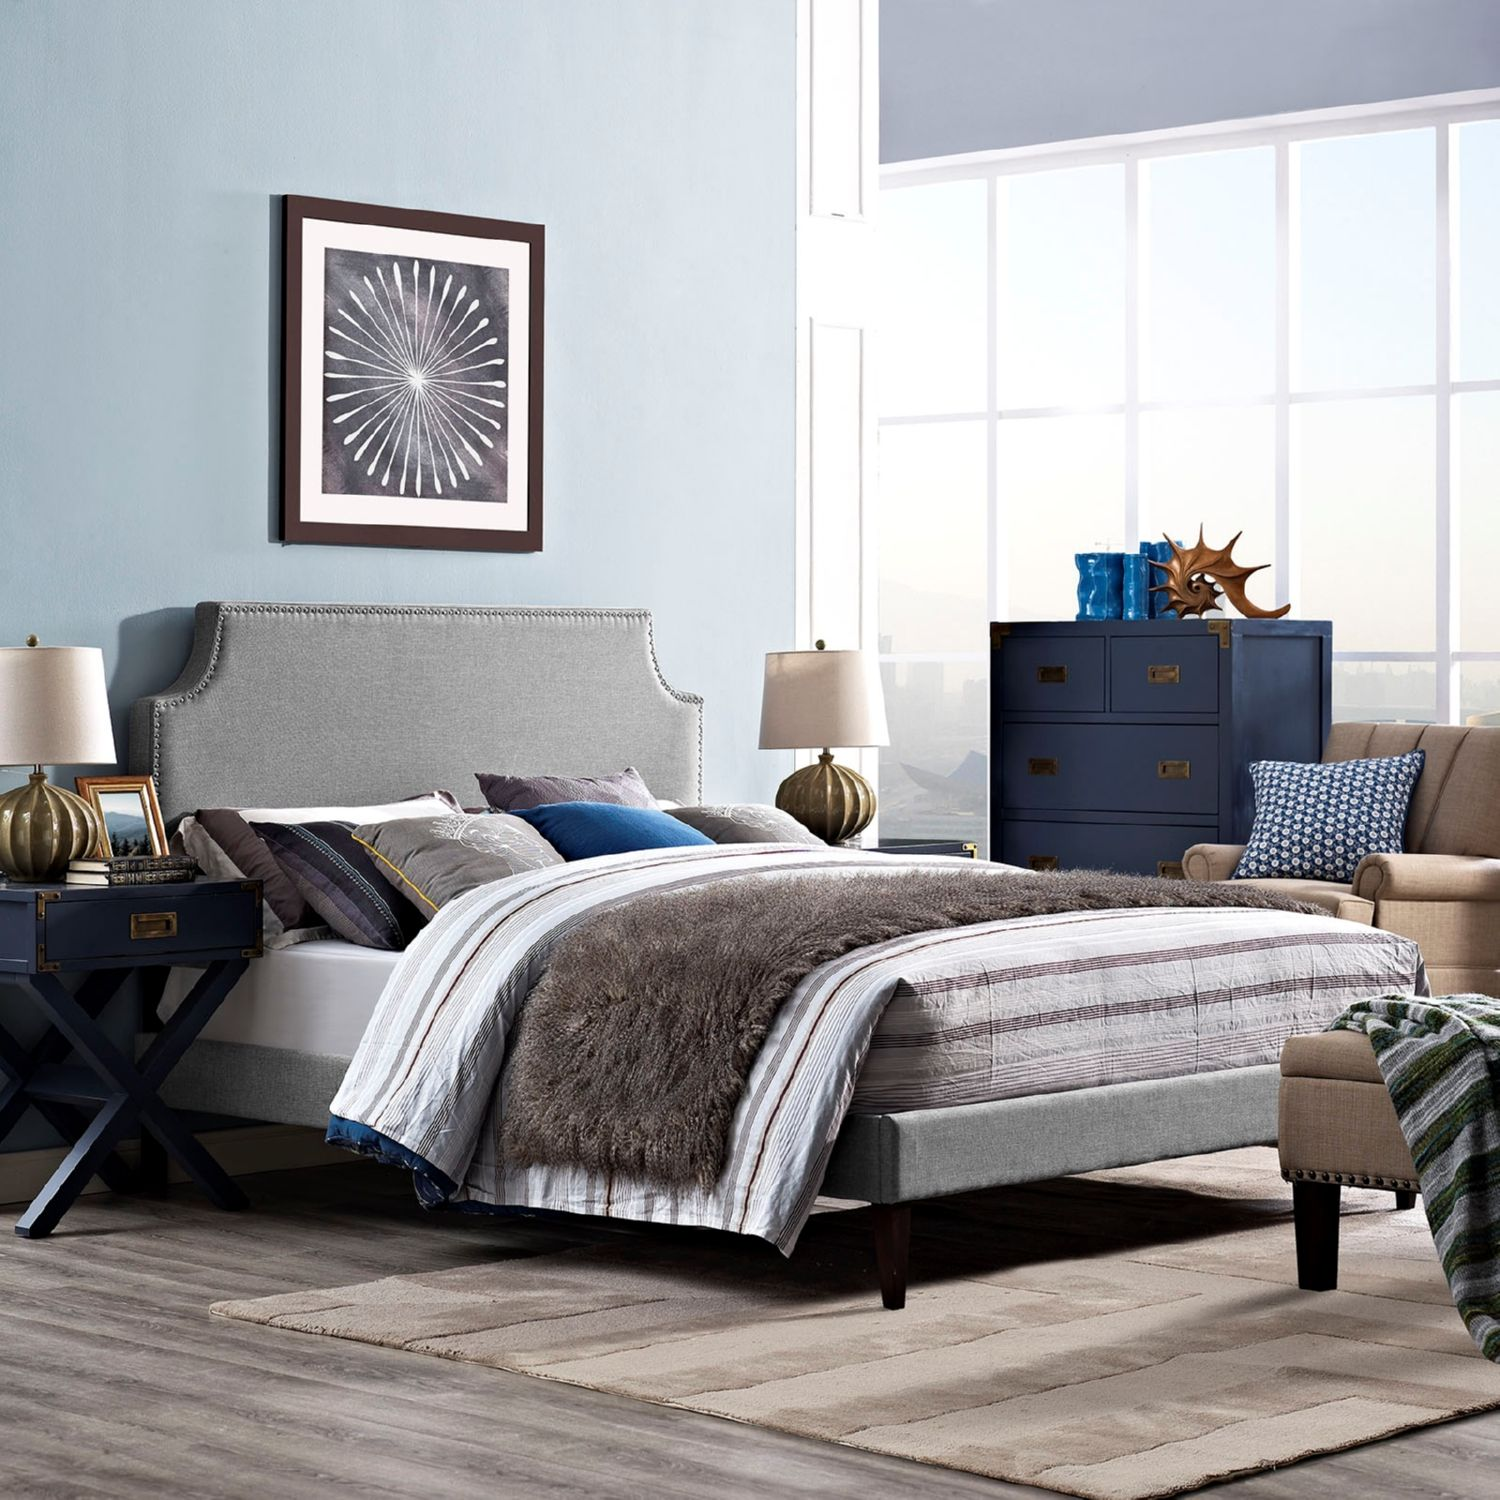 Modway Furniture 5681 Light Gray Queen Fabric Platform Bed